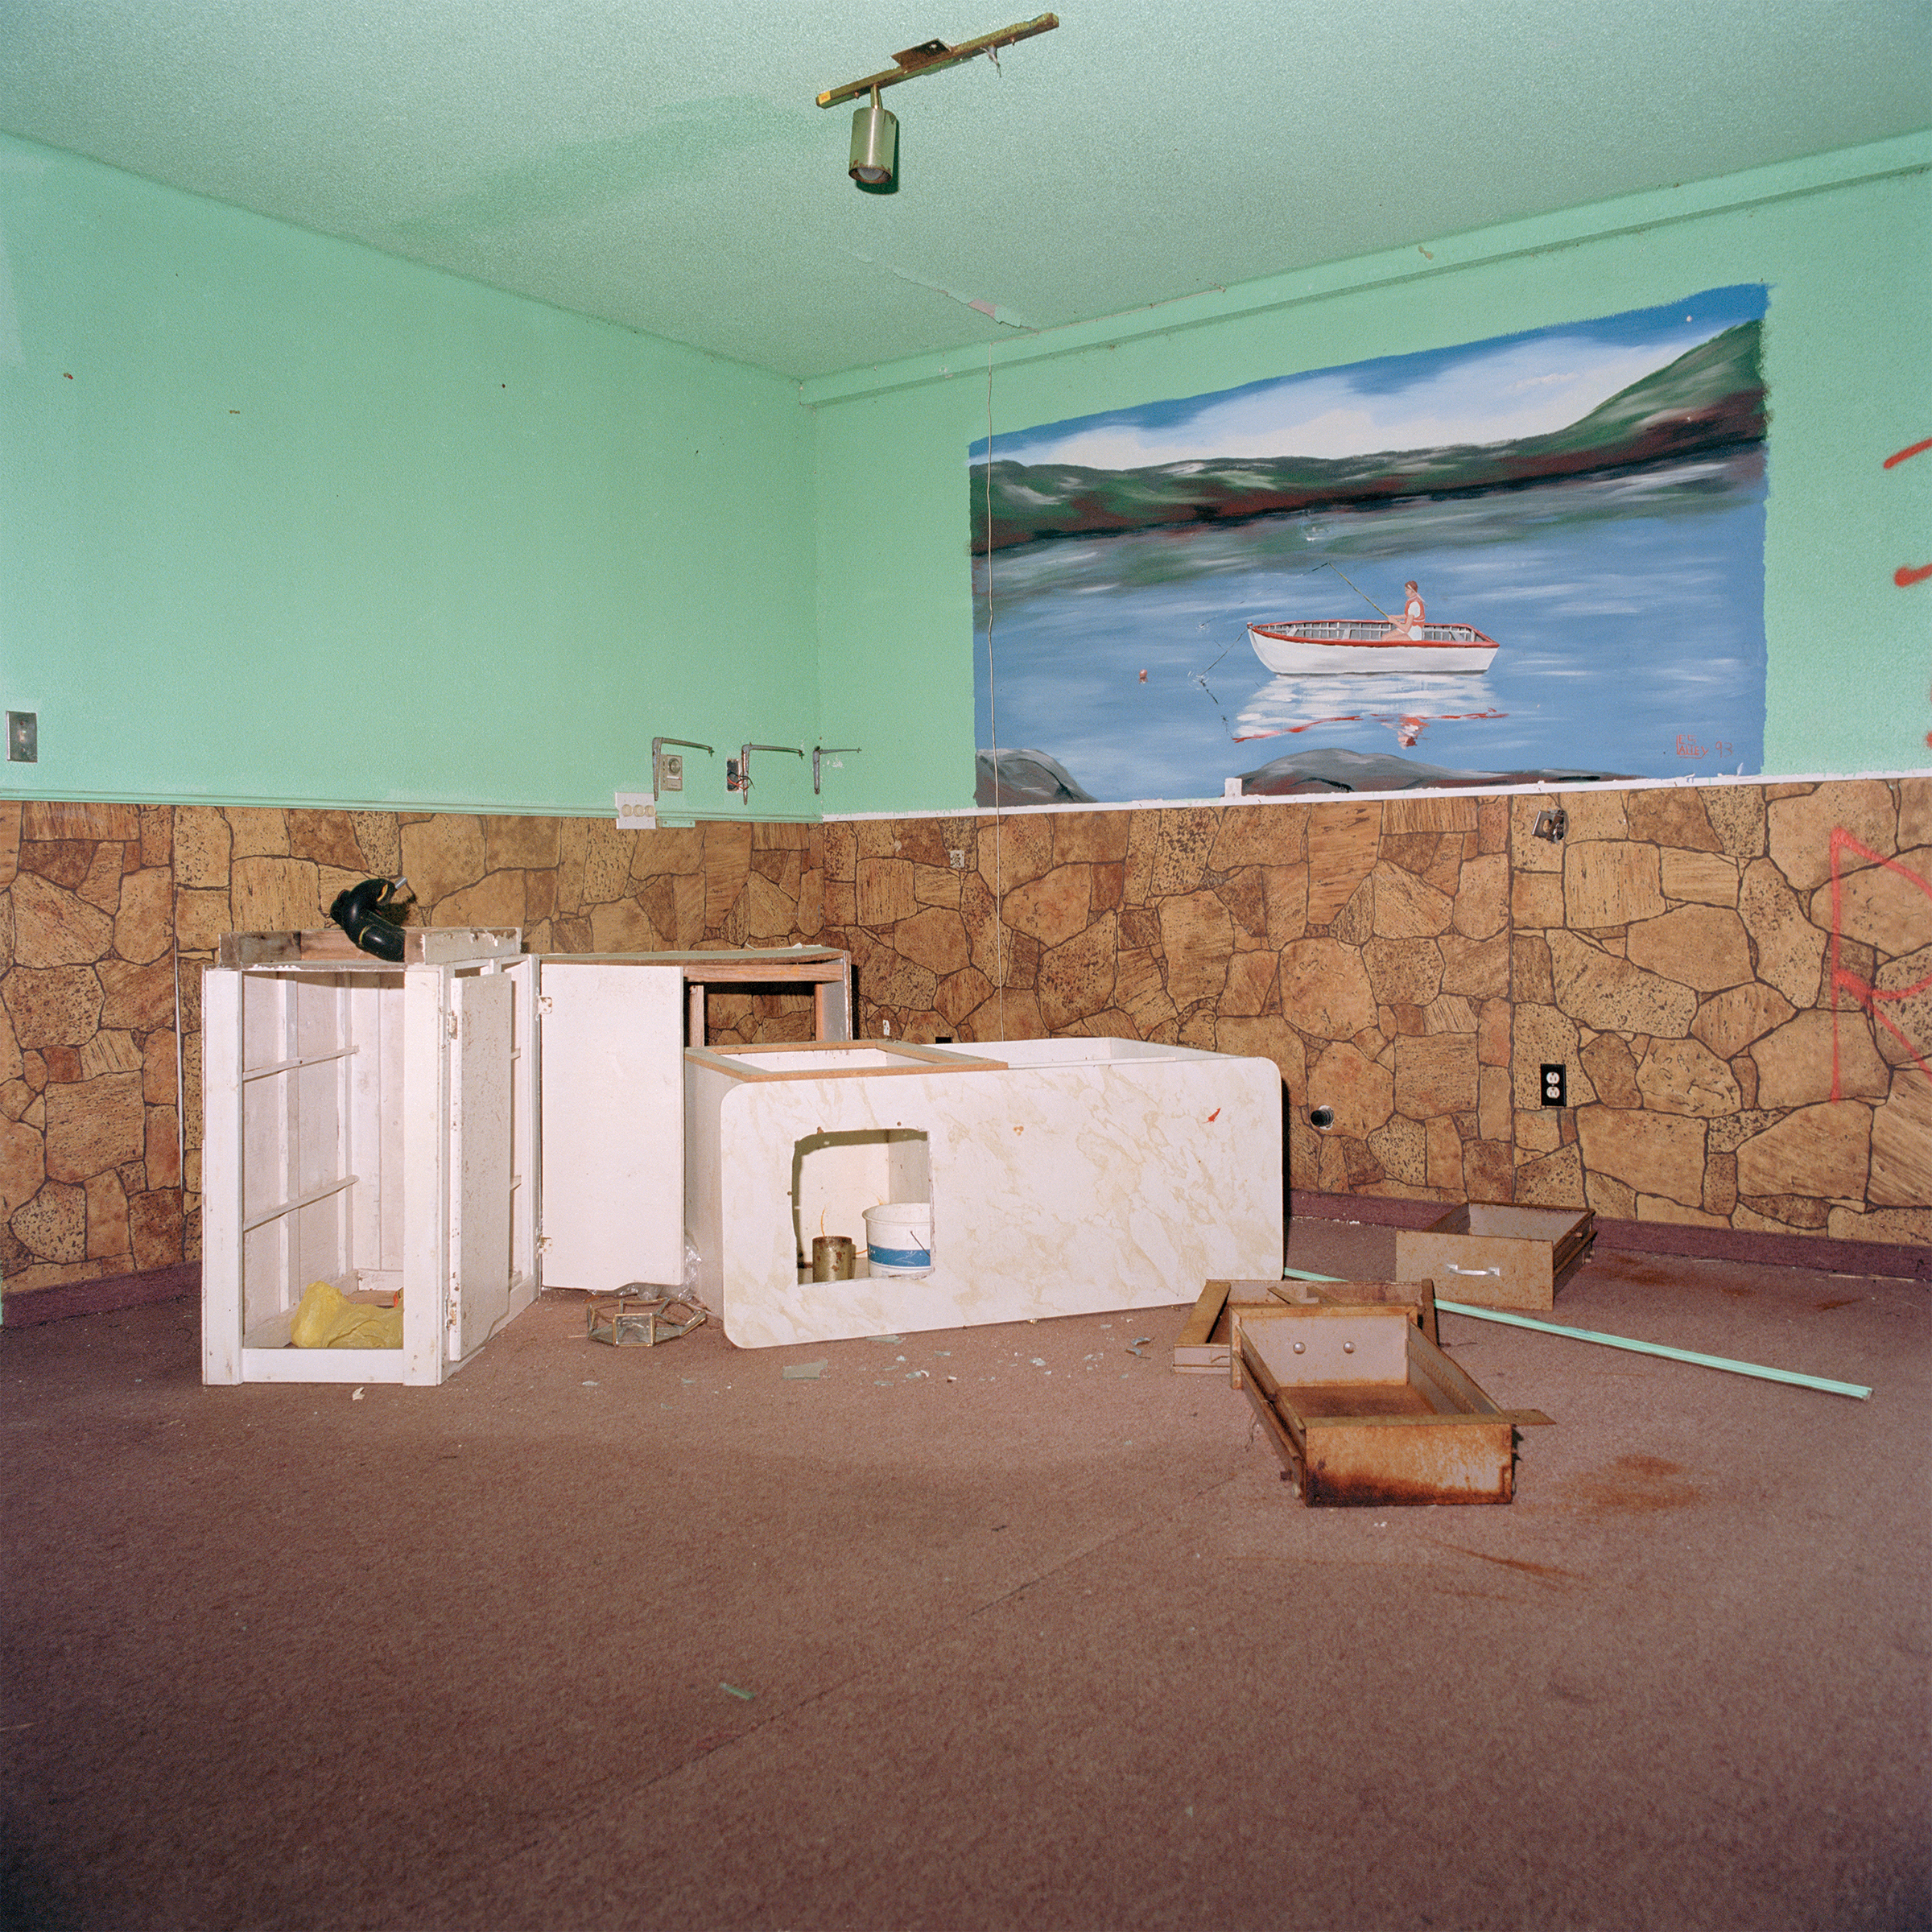 Ethan Murphy, Abandoned Room, from the series Where the Light Shines First, 2017. Courtesy of the artist